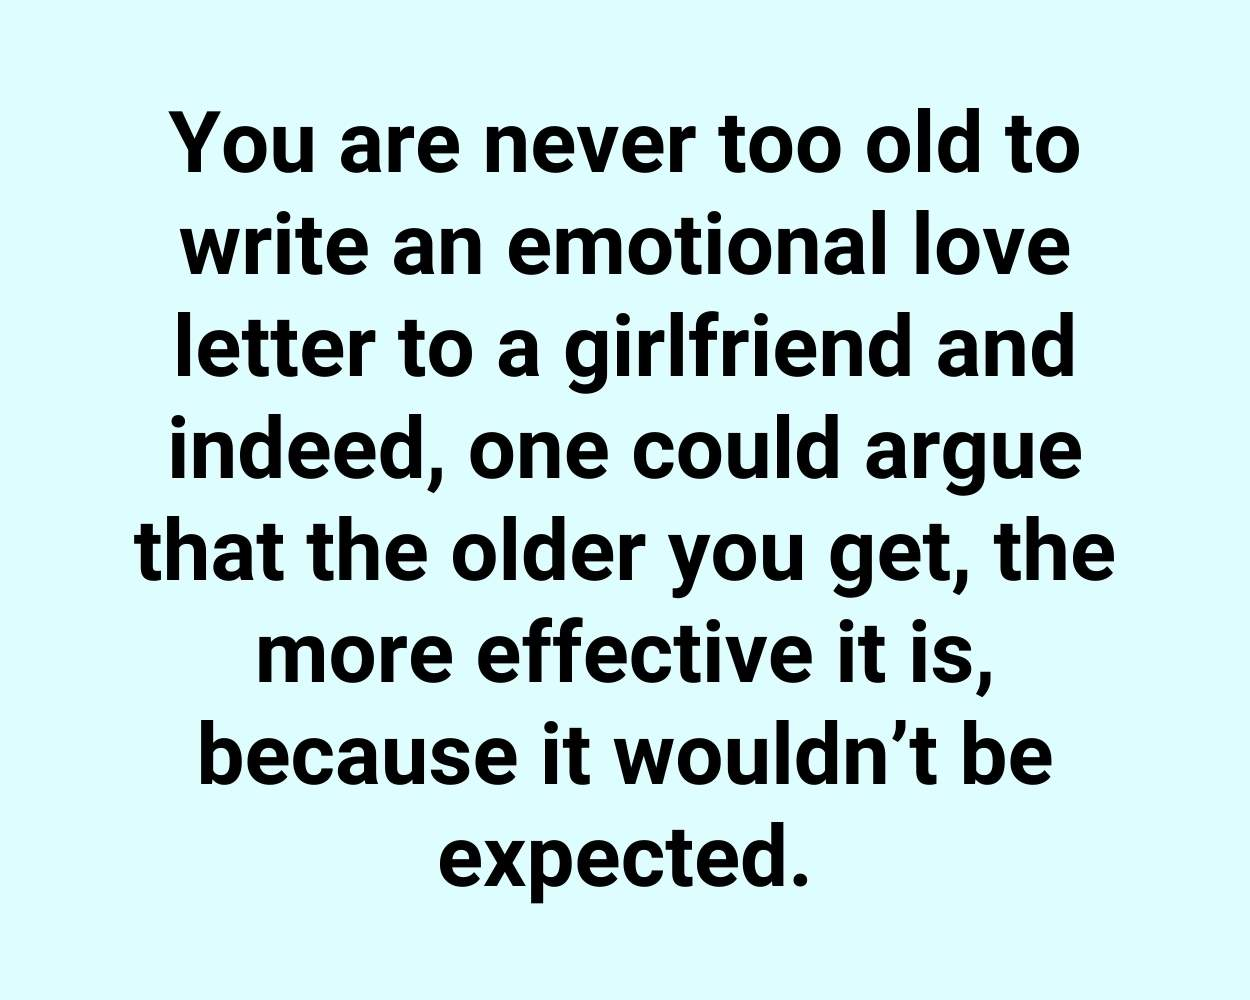 You are never too old to write an emotional love